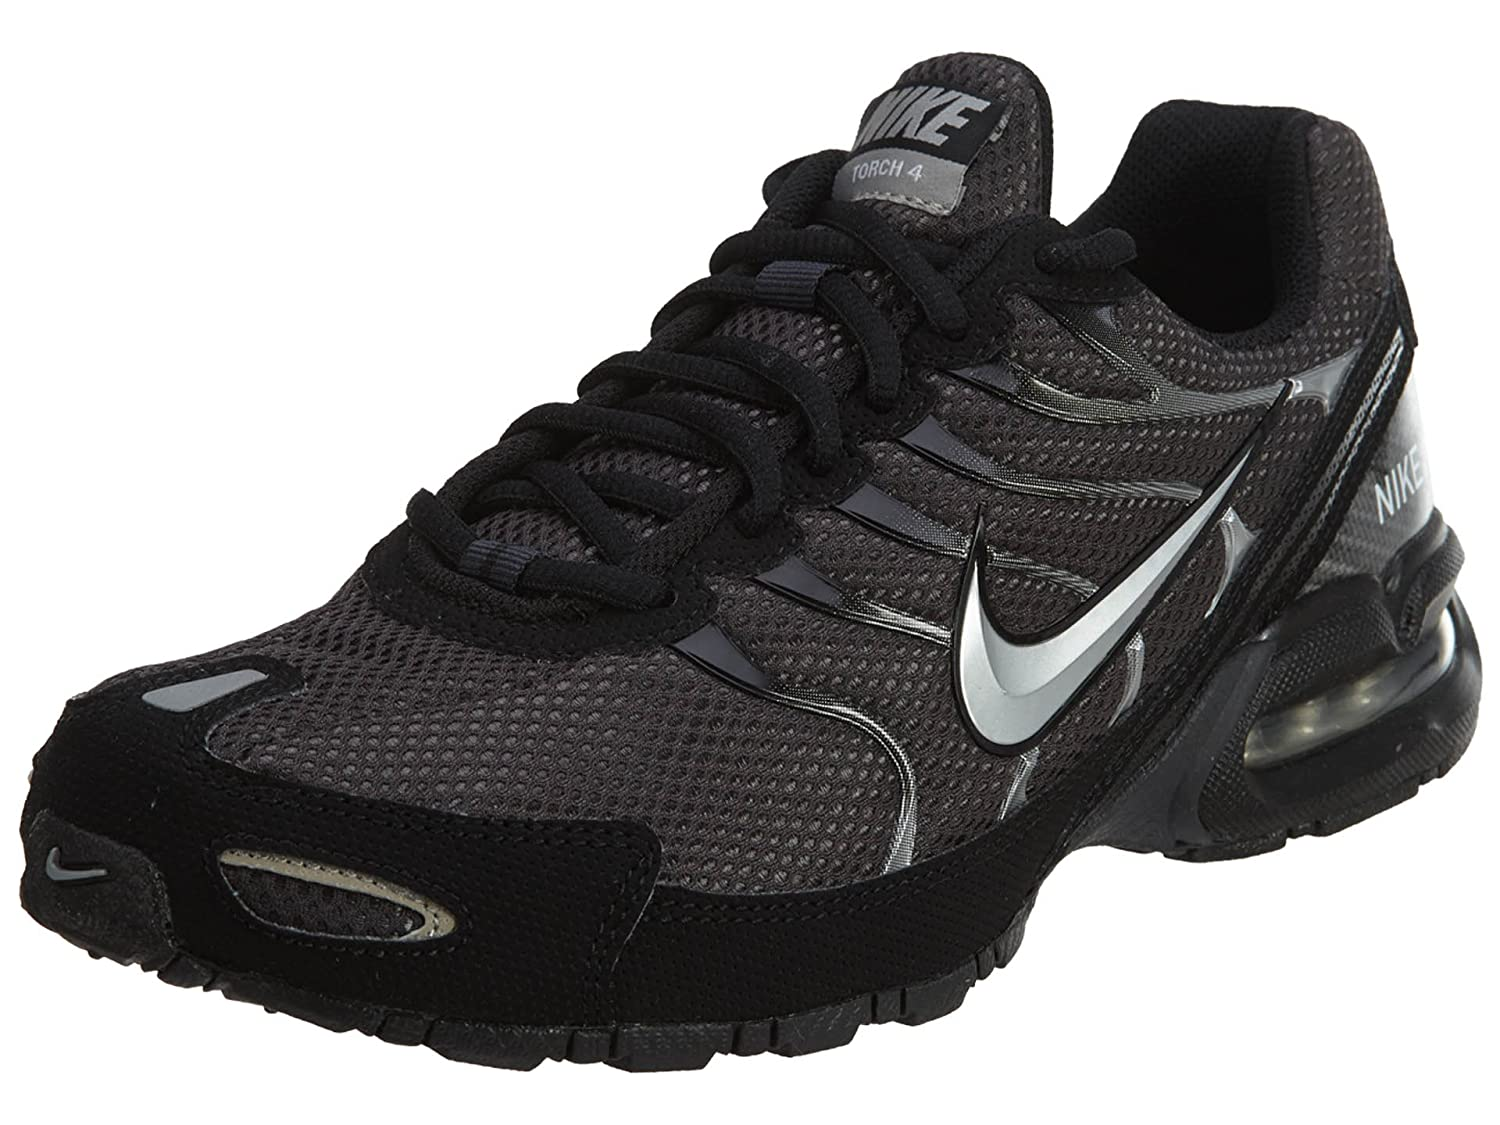 64142e6439 Amazon.com | Nike Mens Air Max Torch 4 Running Shoe #343846-002,  Anthracite/Metallic Silver-black, | Road Running